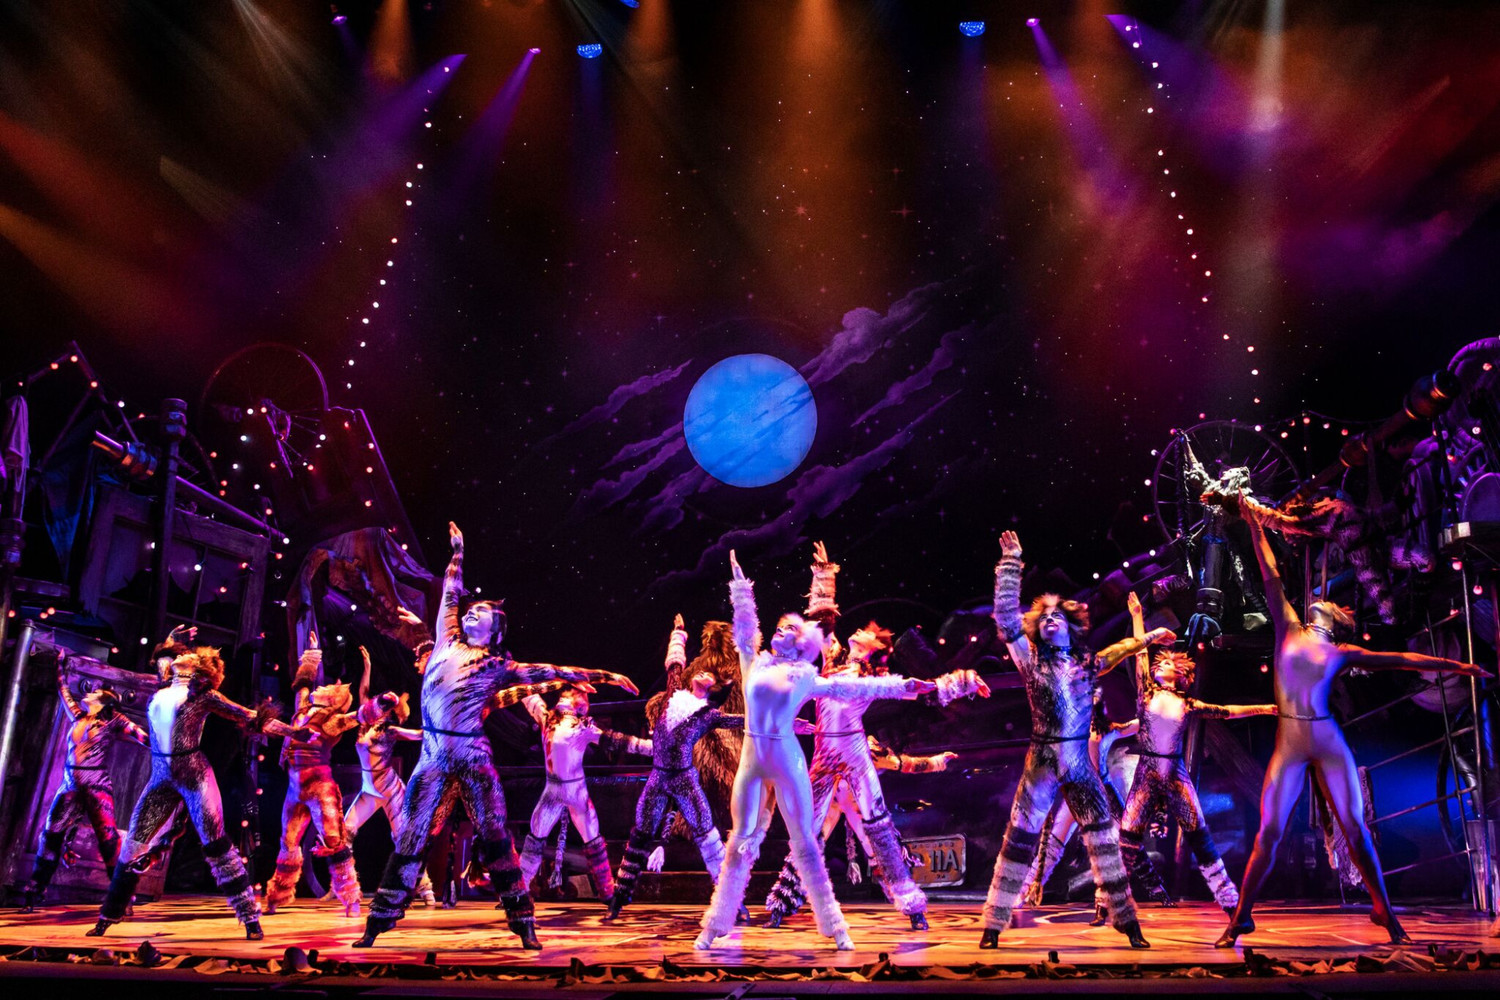 BWW Review: CATS is Still the Cat's Meow